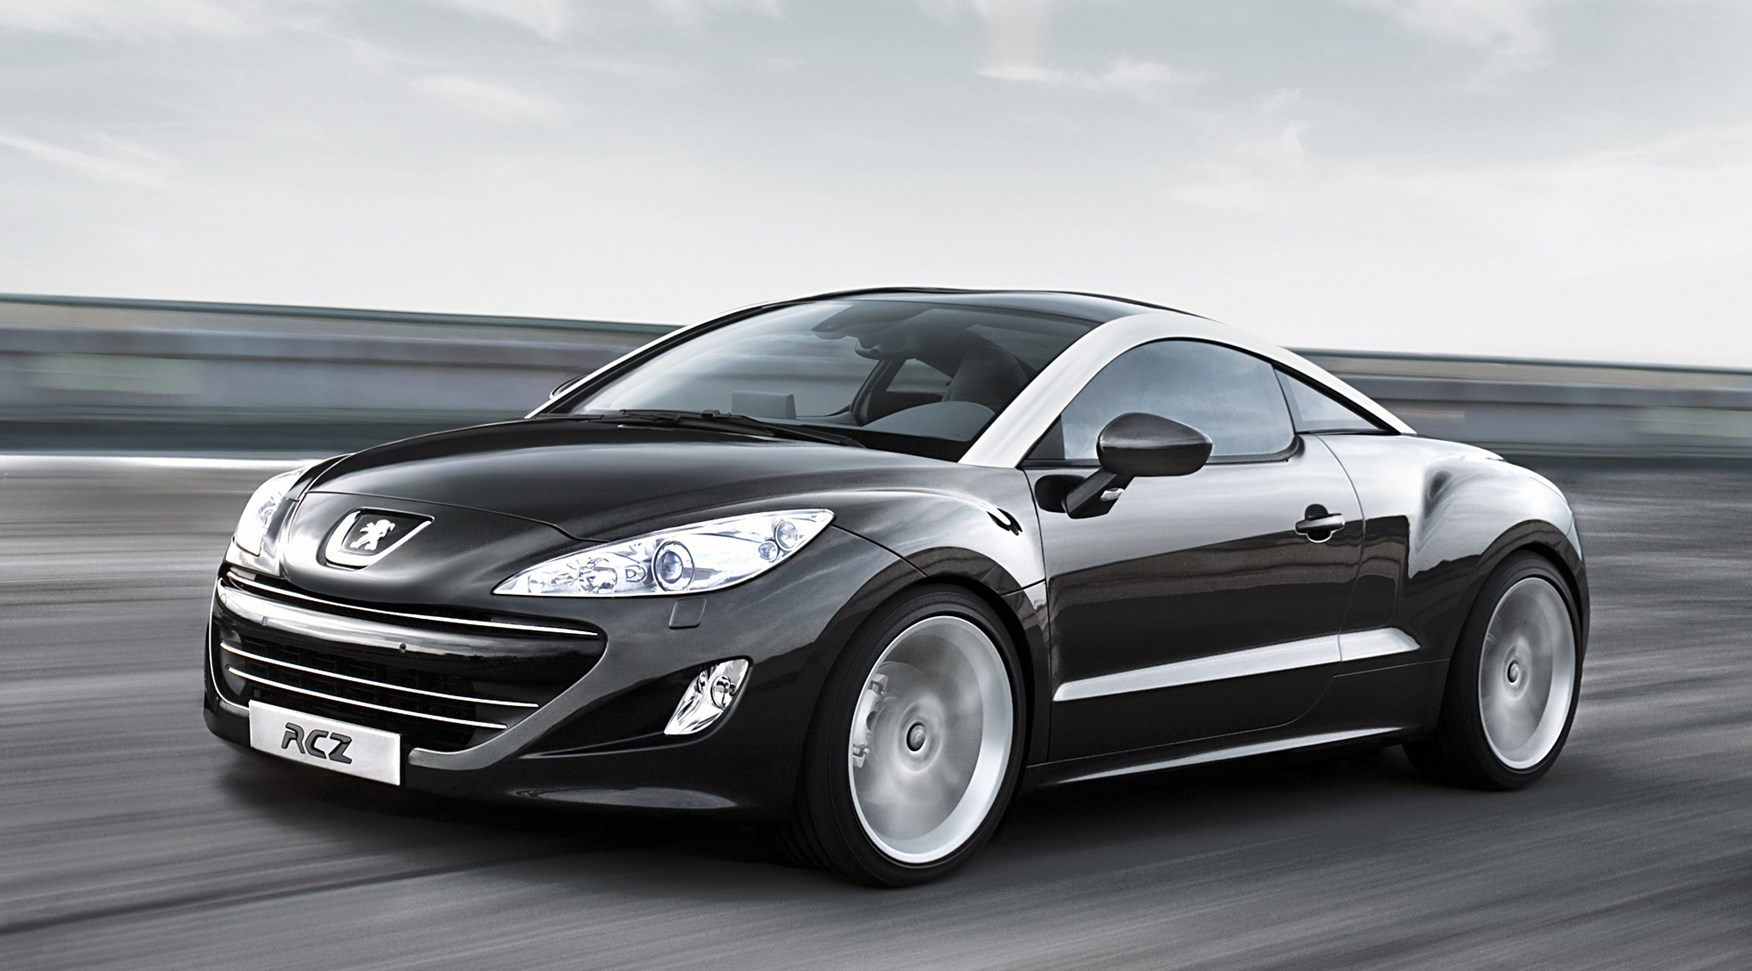 peugeot rcz coupe review 2010 2015 parkers. Black Bedroom Furniture Sets. Home Design Ideas